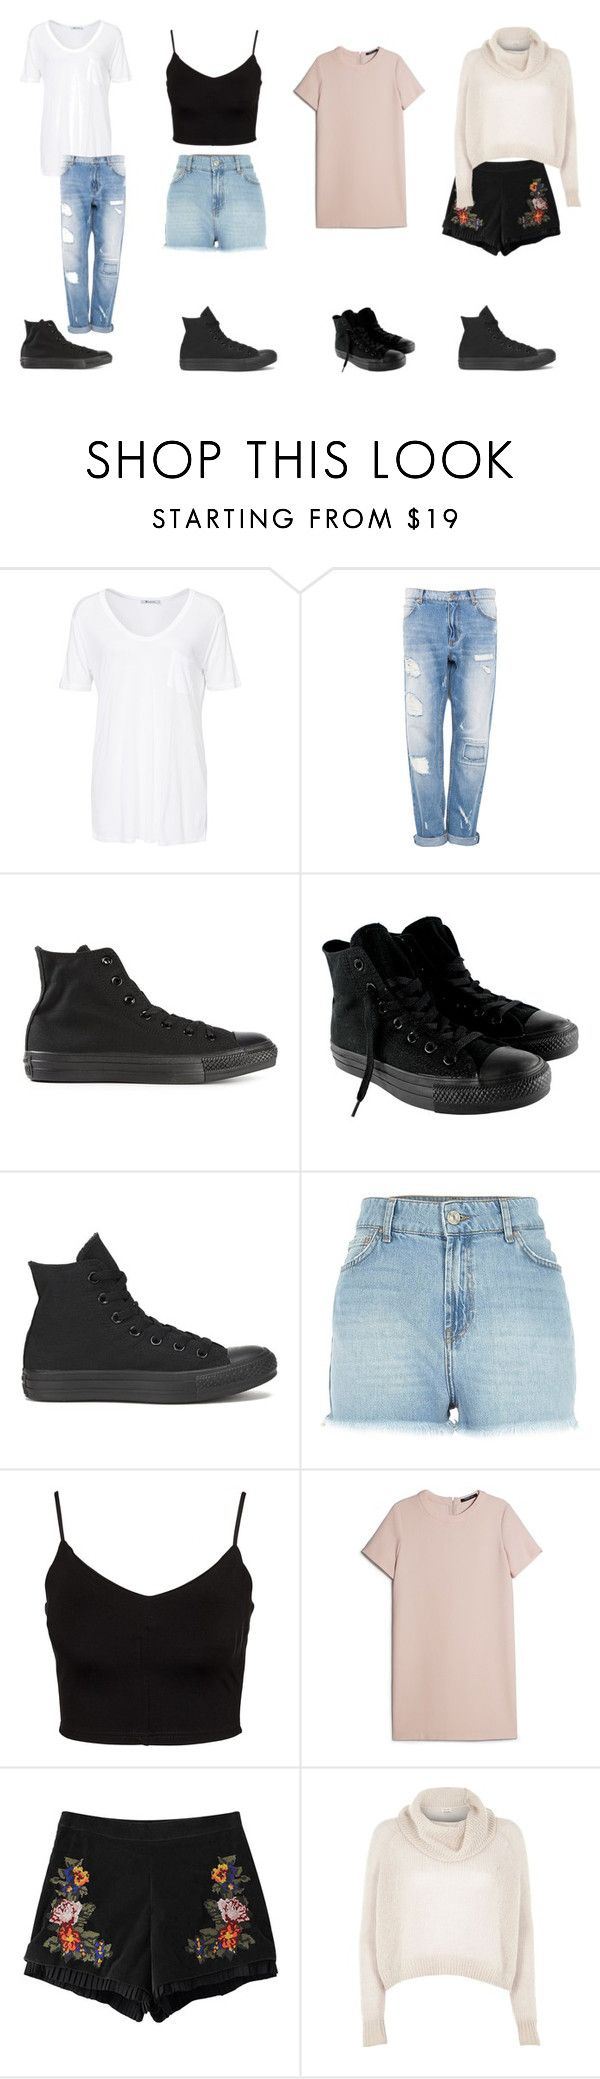 """Casual Outfits With High Top Black Converse"" by samsus ❤ liked on Polyvore featuring T By Alexander Wang, Pull&Bear, Converse, River Island, Glamorous, MANGO, Chicnova Fashion, casual, converse and casualoutfit"